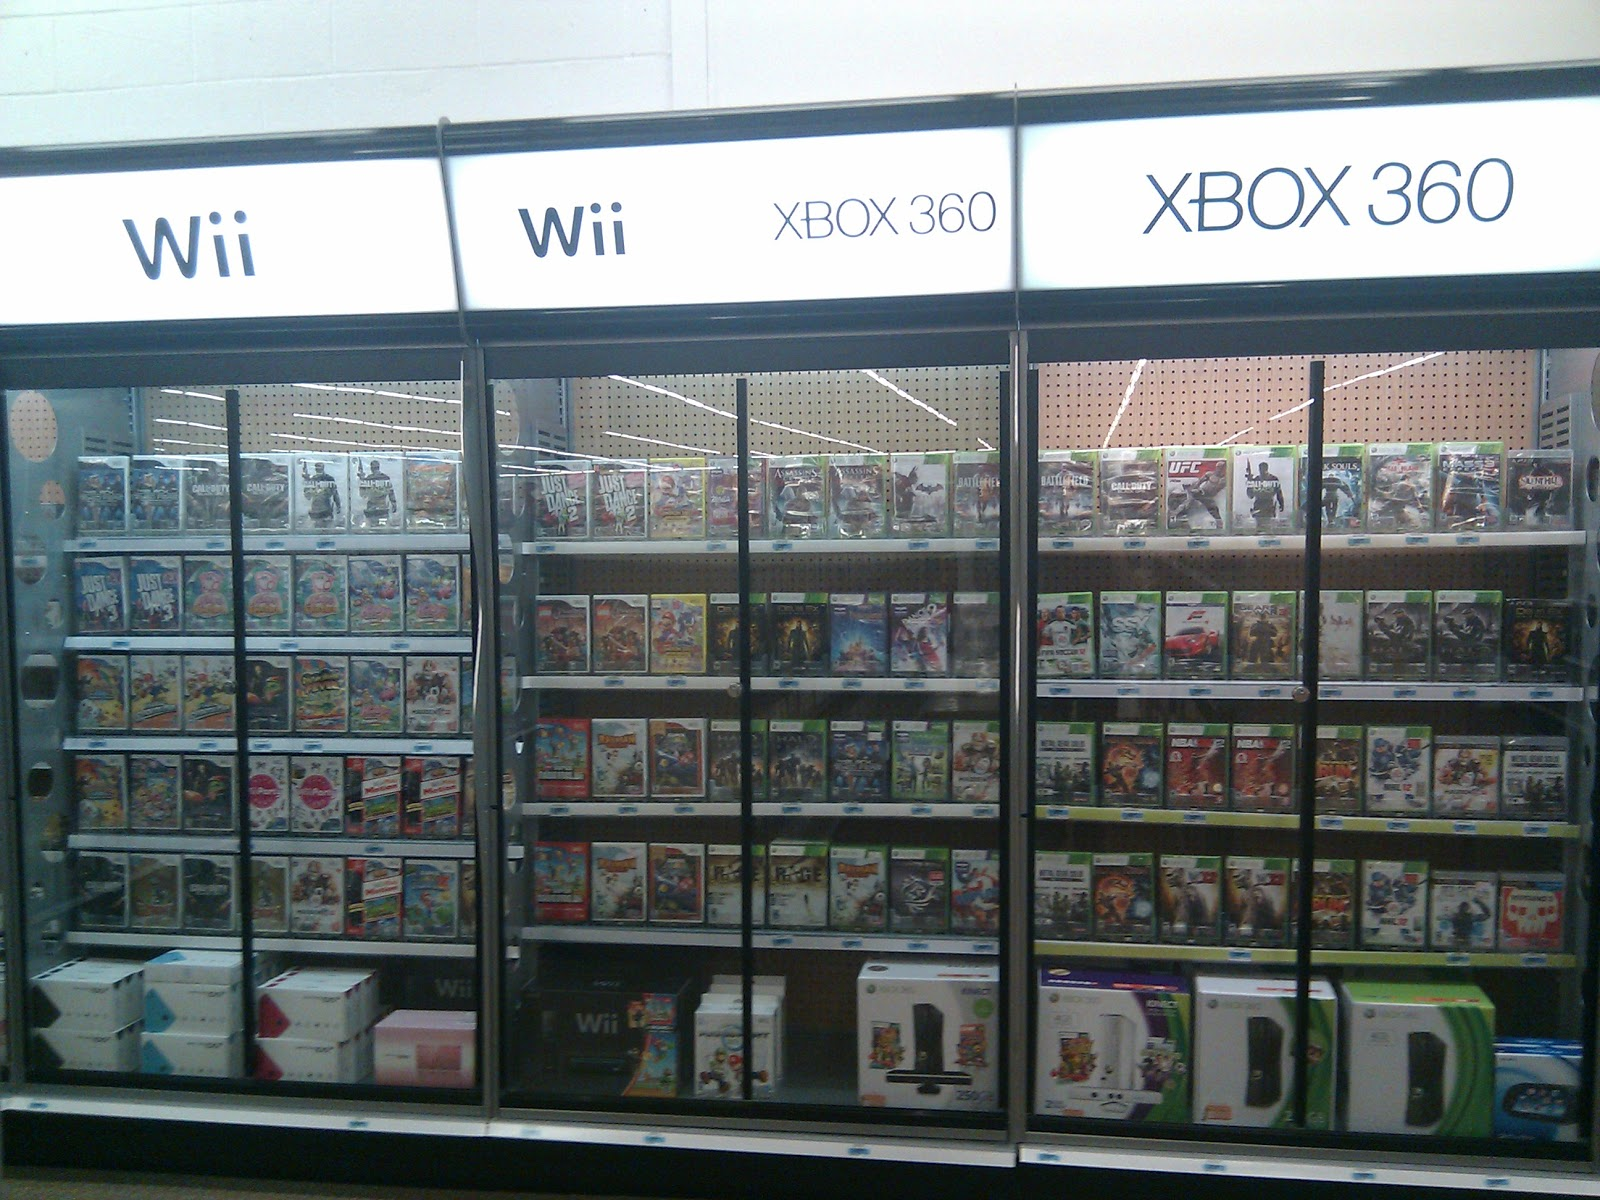 Trend New video game cases in a Kmart